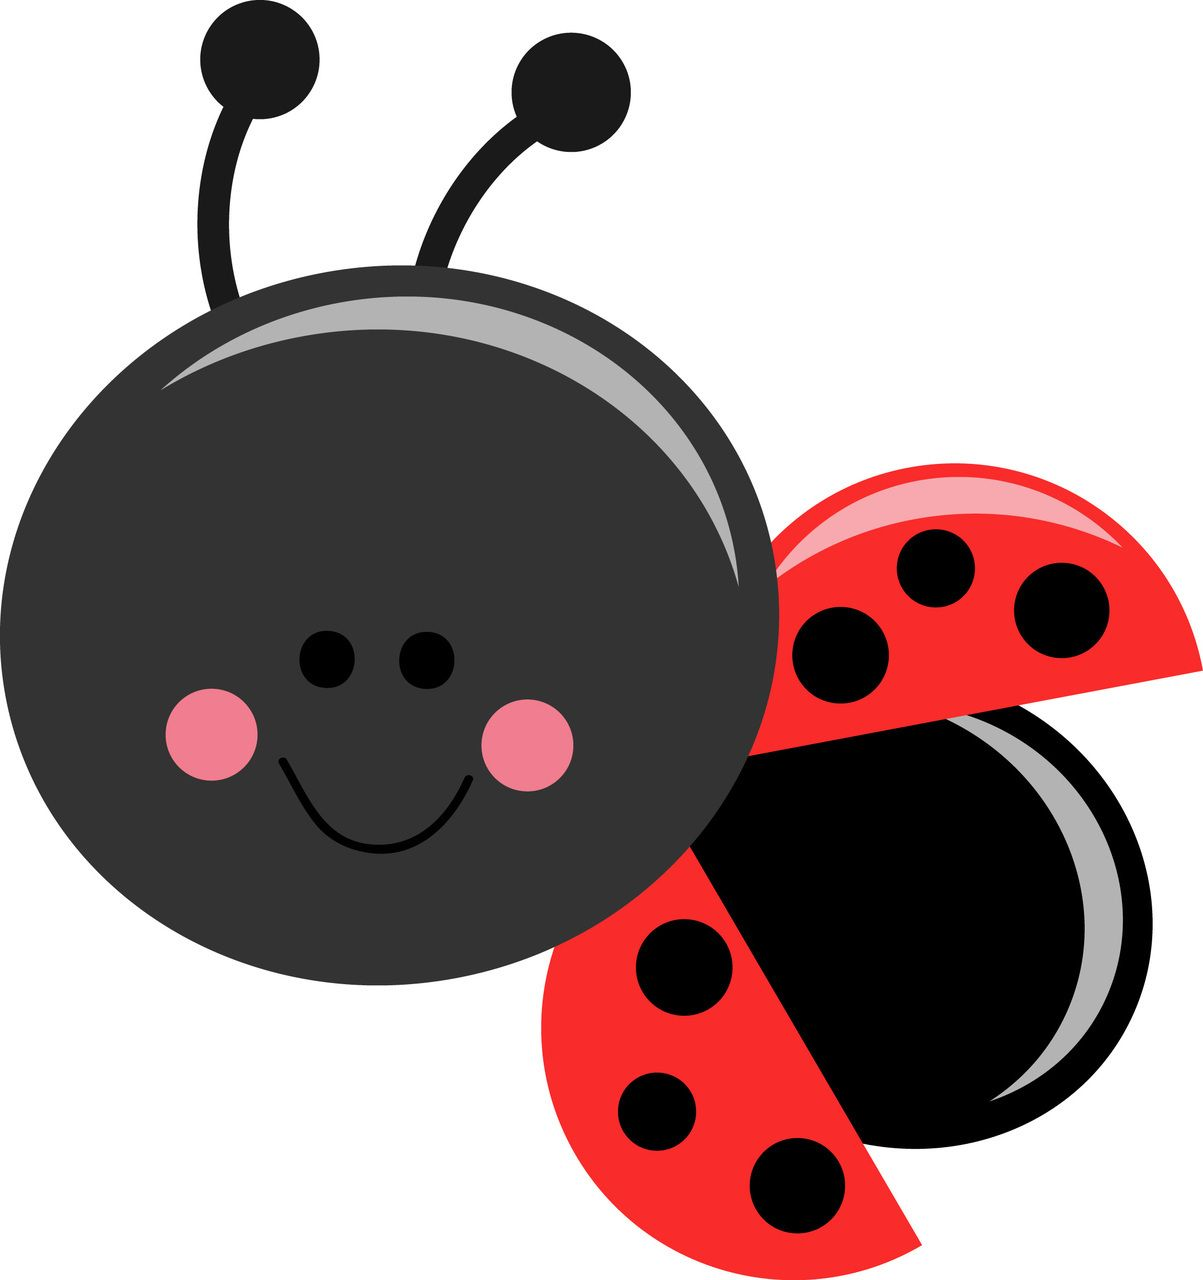 ladybug graphics cute ladybug images free cliparts that you can rh pinterest com free clipart bugs bunny free bug clip art images